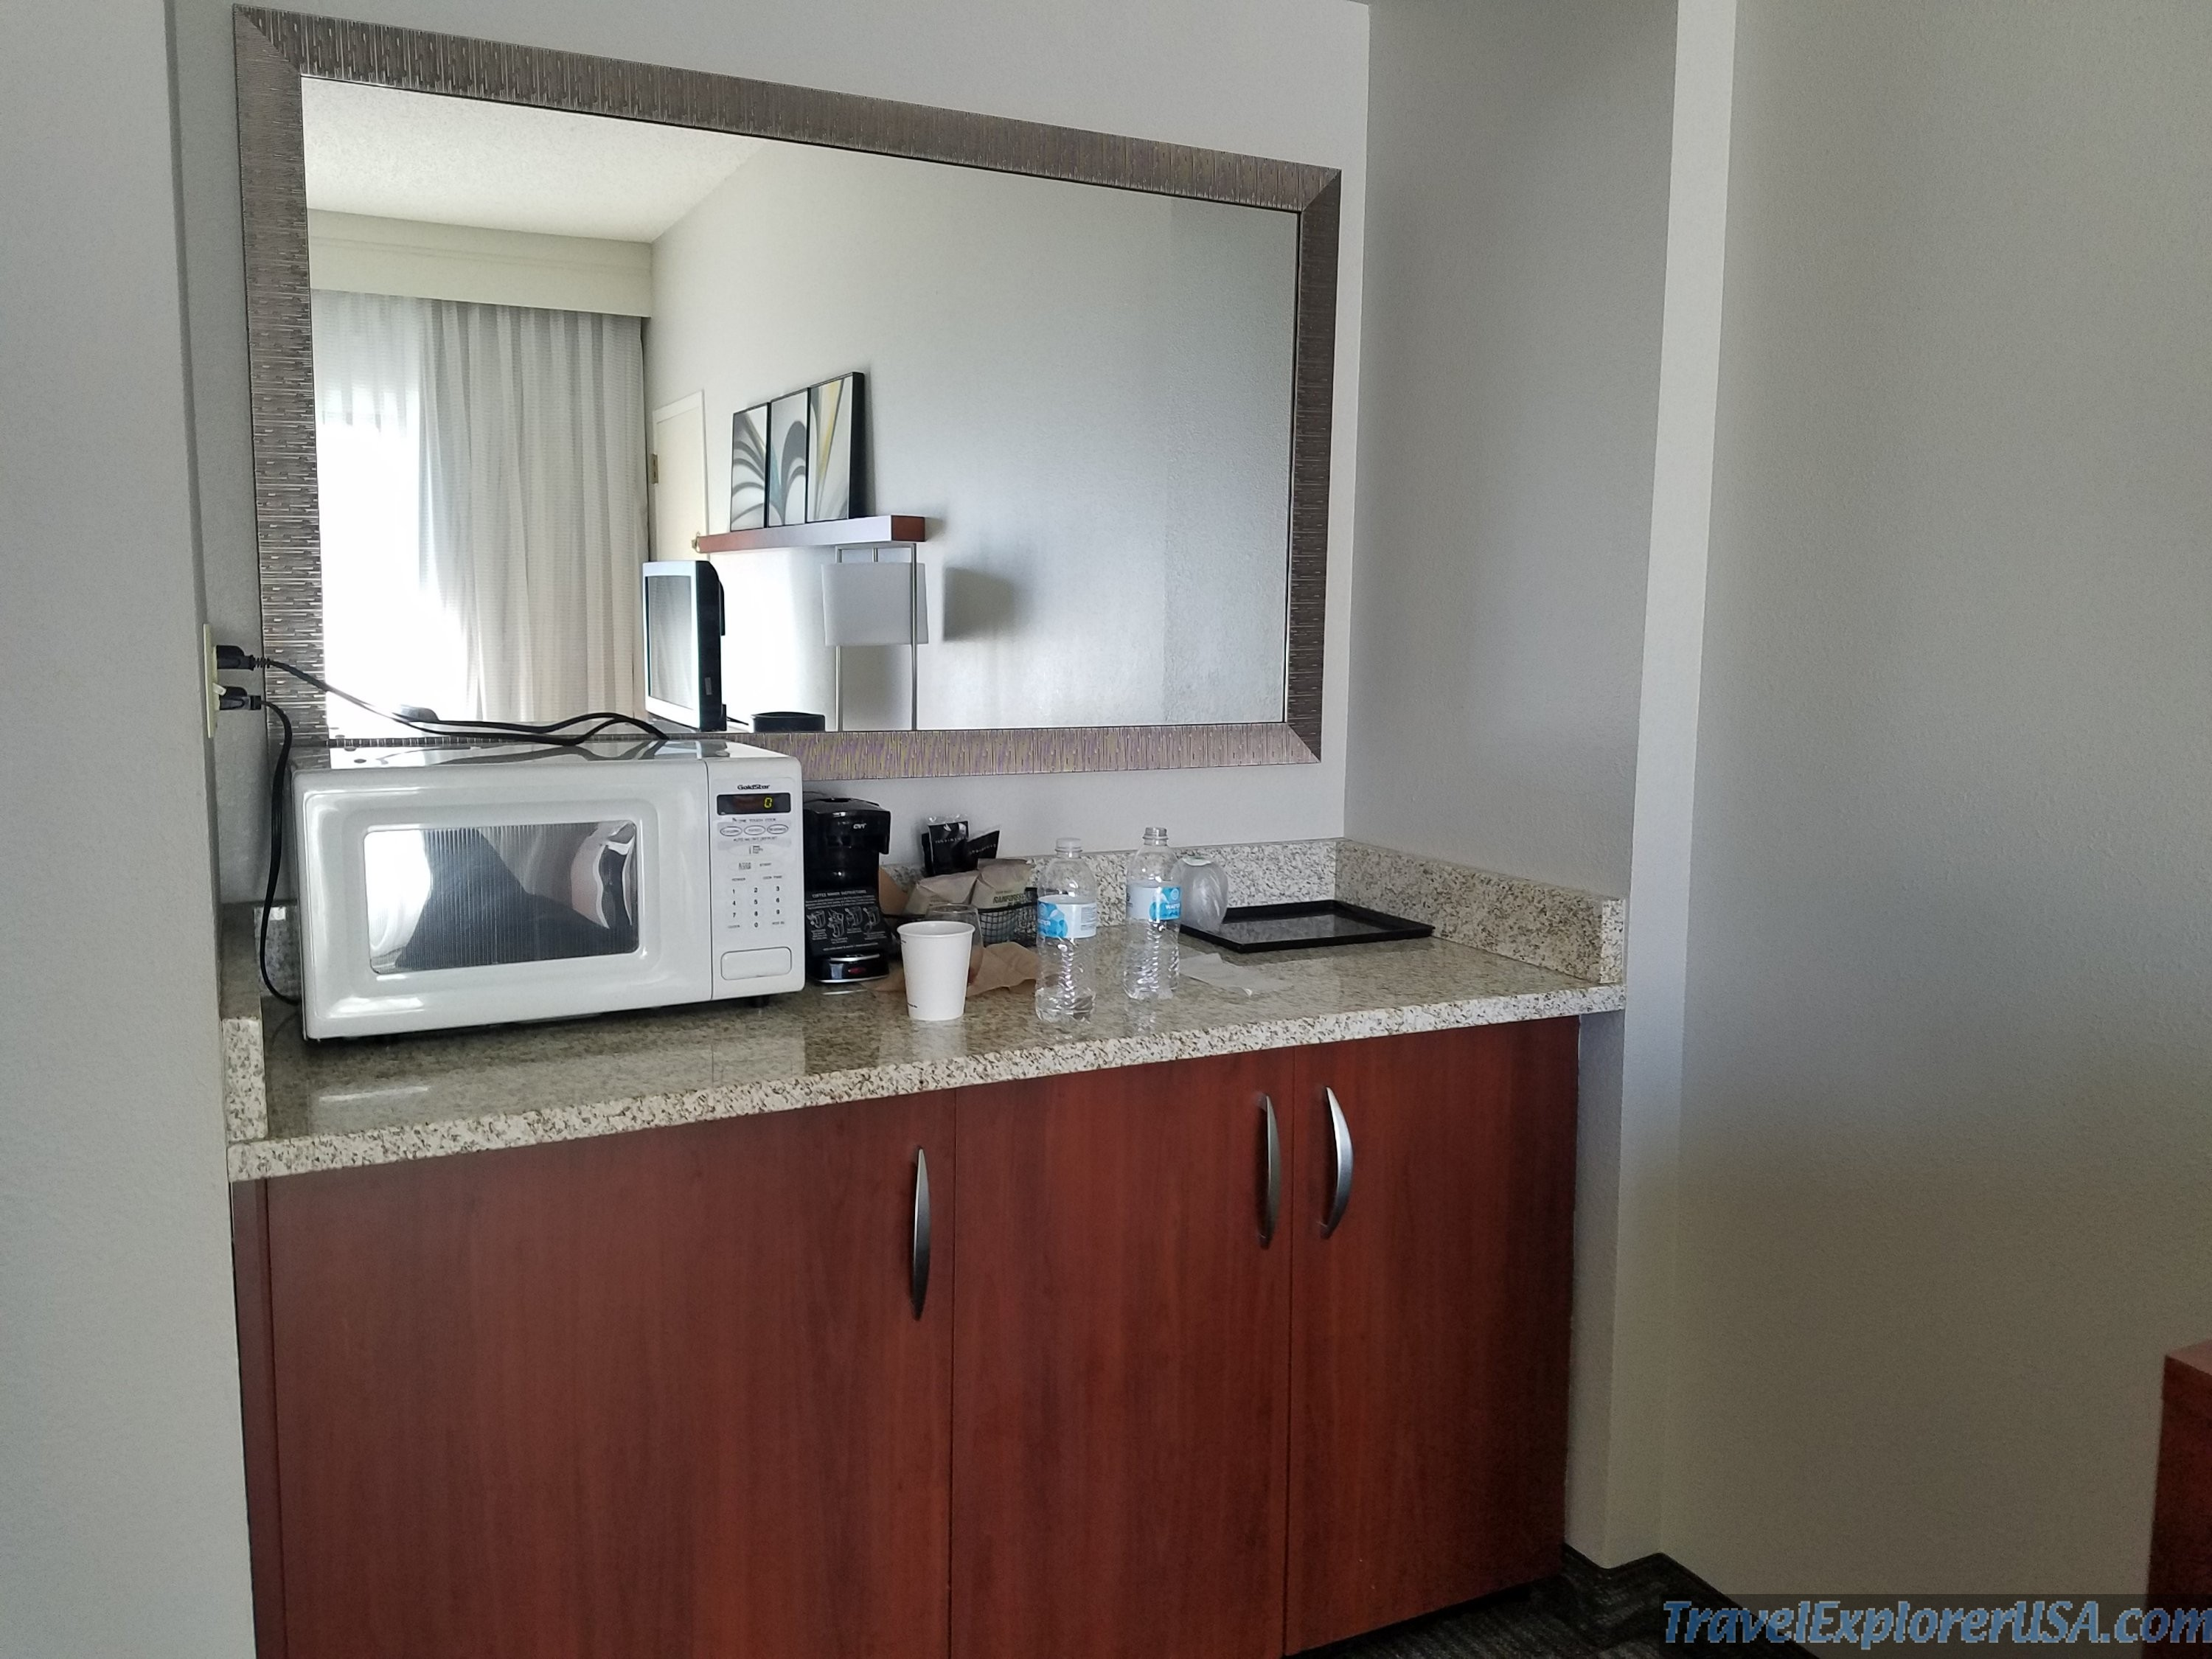 Courtyard by Marriott, Kansas City South (Kansas City, MO) USA